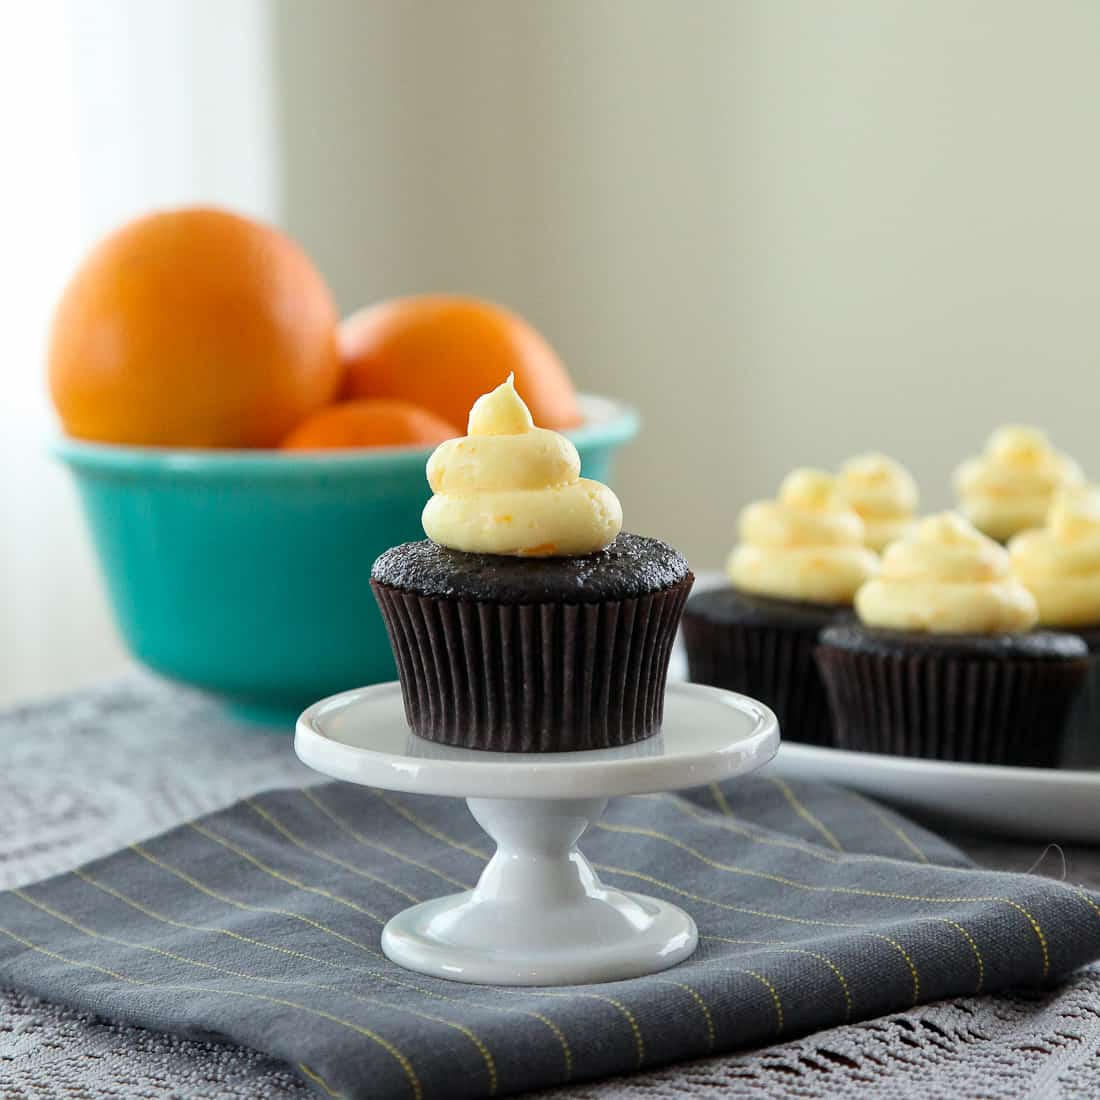 Fluffy Chocolate Orange Creamsicle Cupcakes